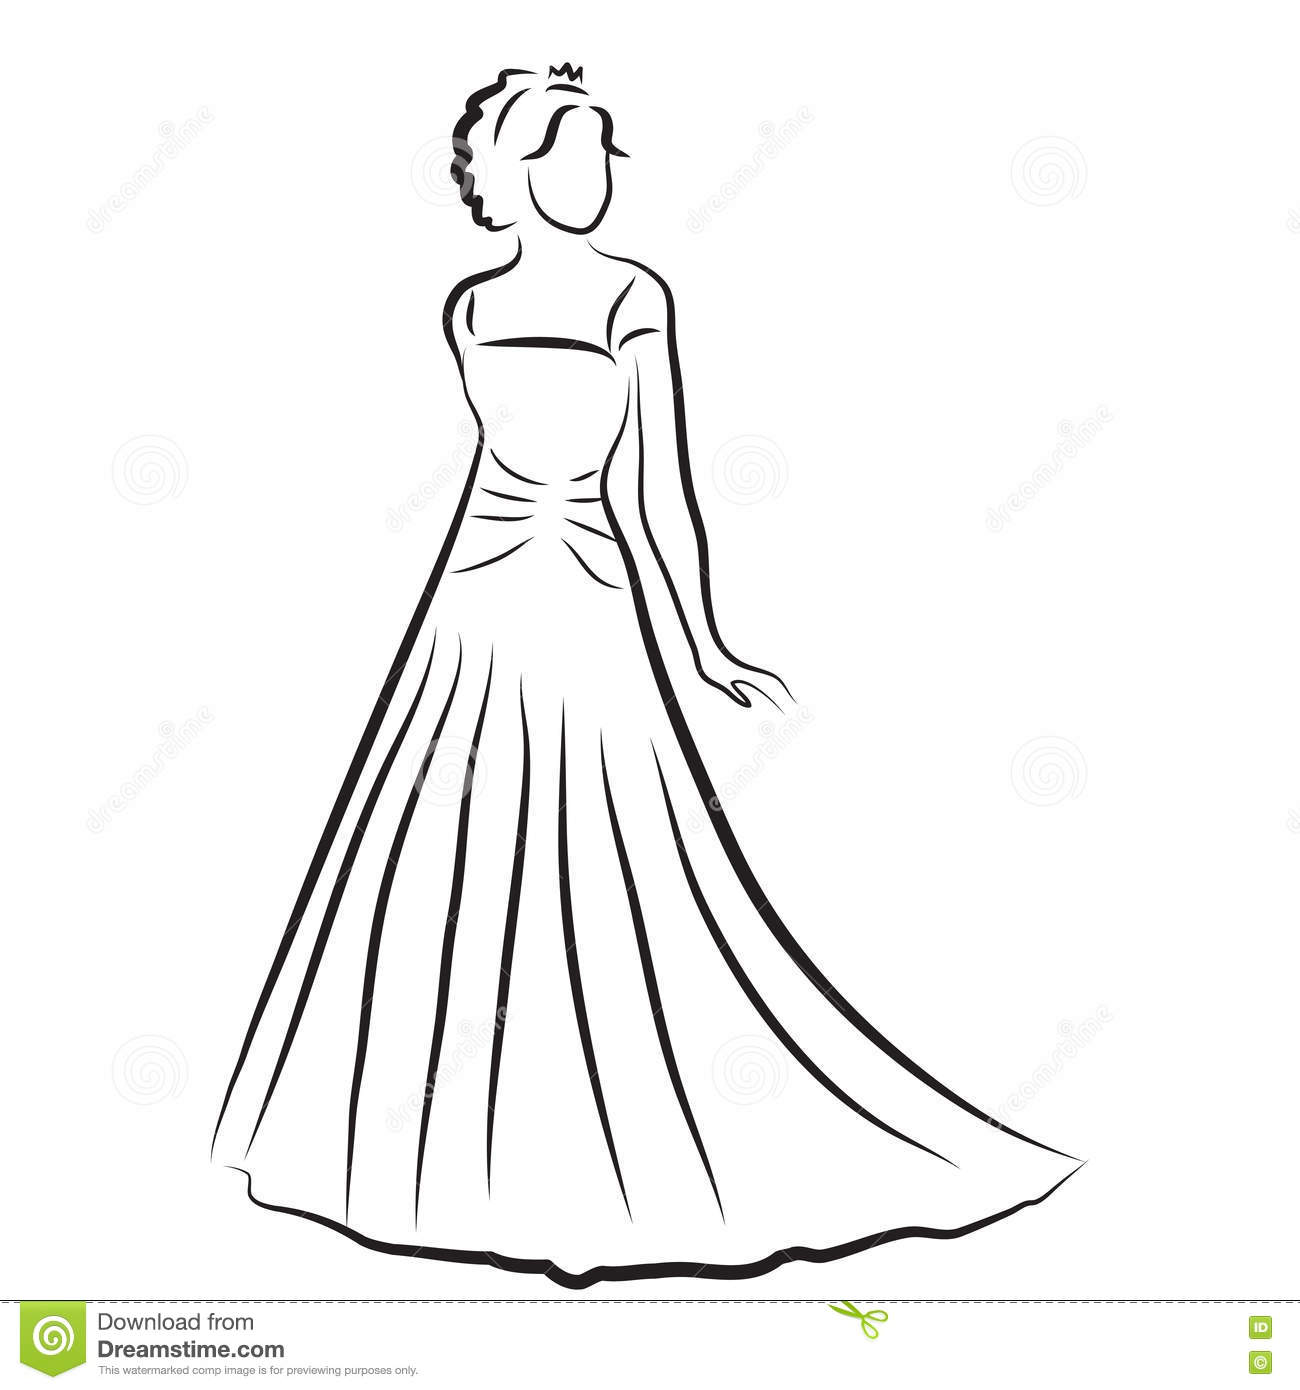 Silhouette Of A Bride In A Wedding Dress,vector Cartoon